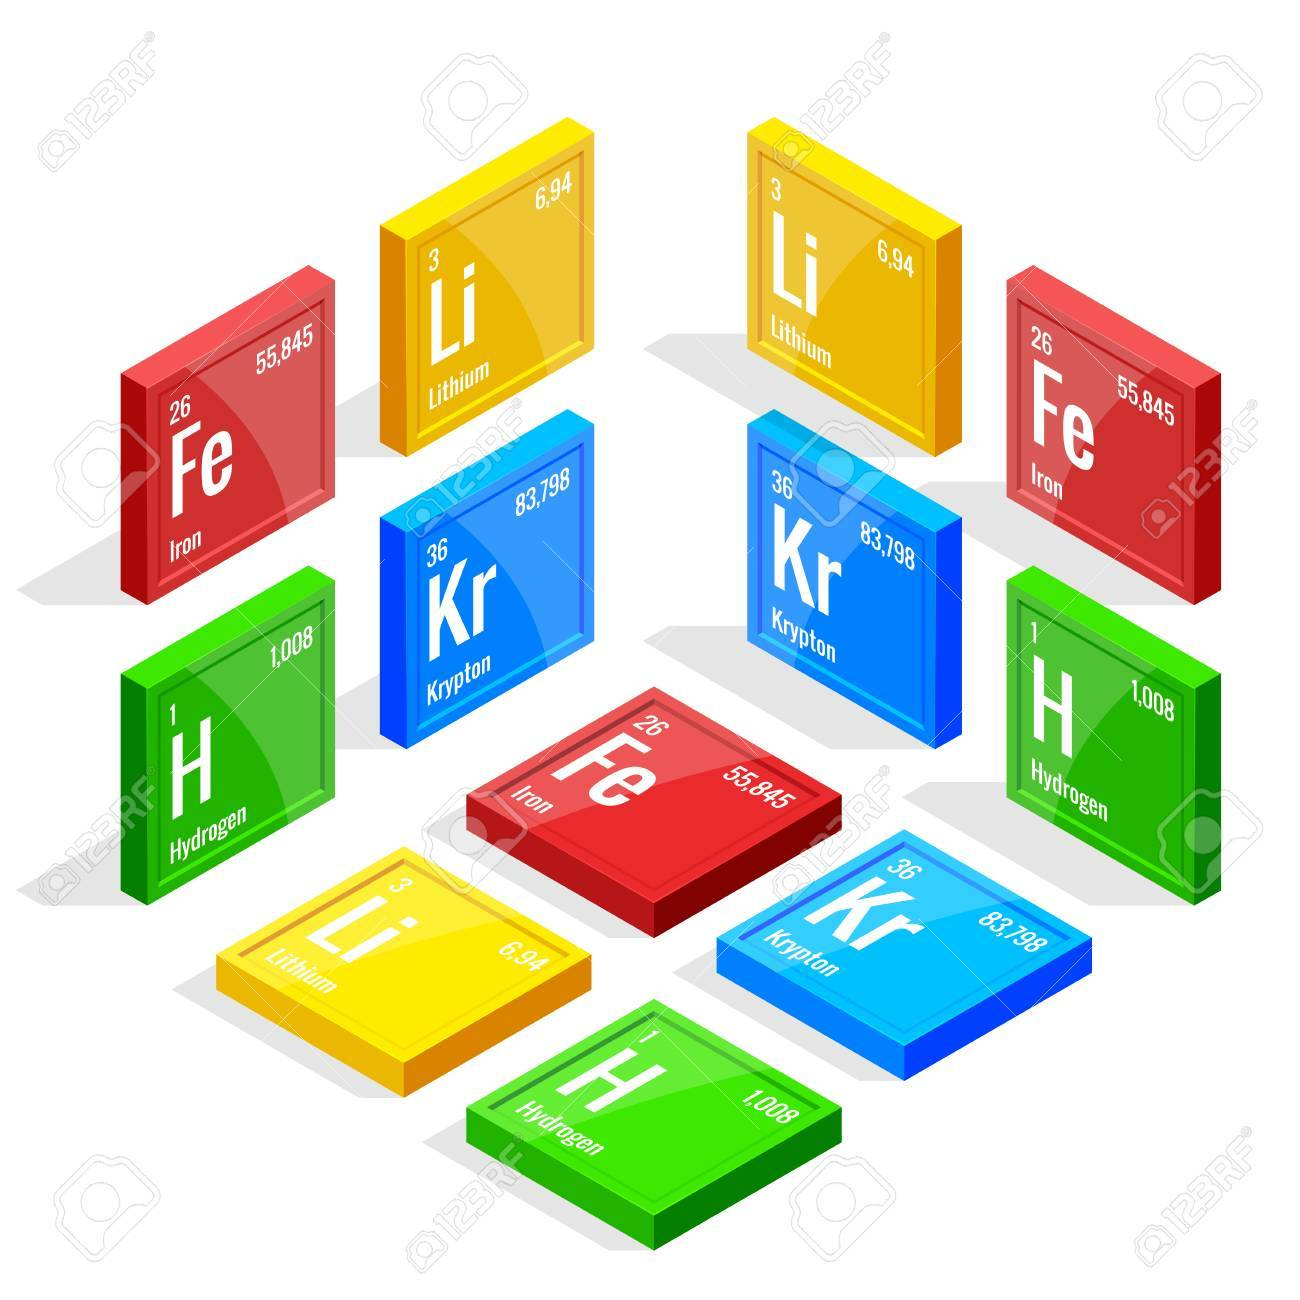 Isometric set of elements of the periodic table Mendeleev s Periodic Table. Vector illustration lithium  sc 1 st  123RF.com & Isometric Set Of Elements Of The Periodic Table Mendeleev S Periodic ...